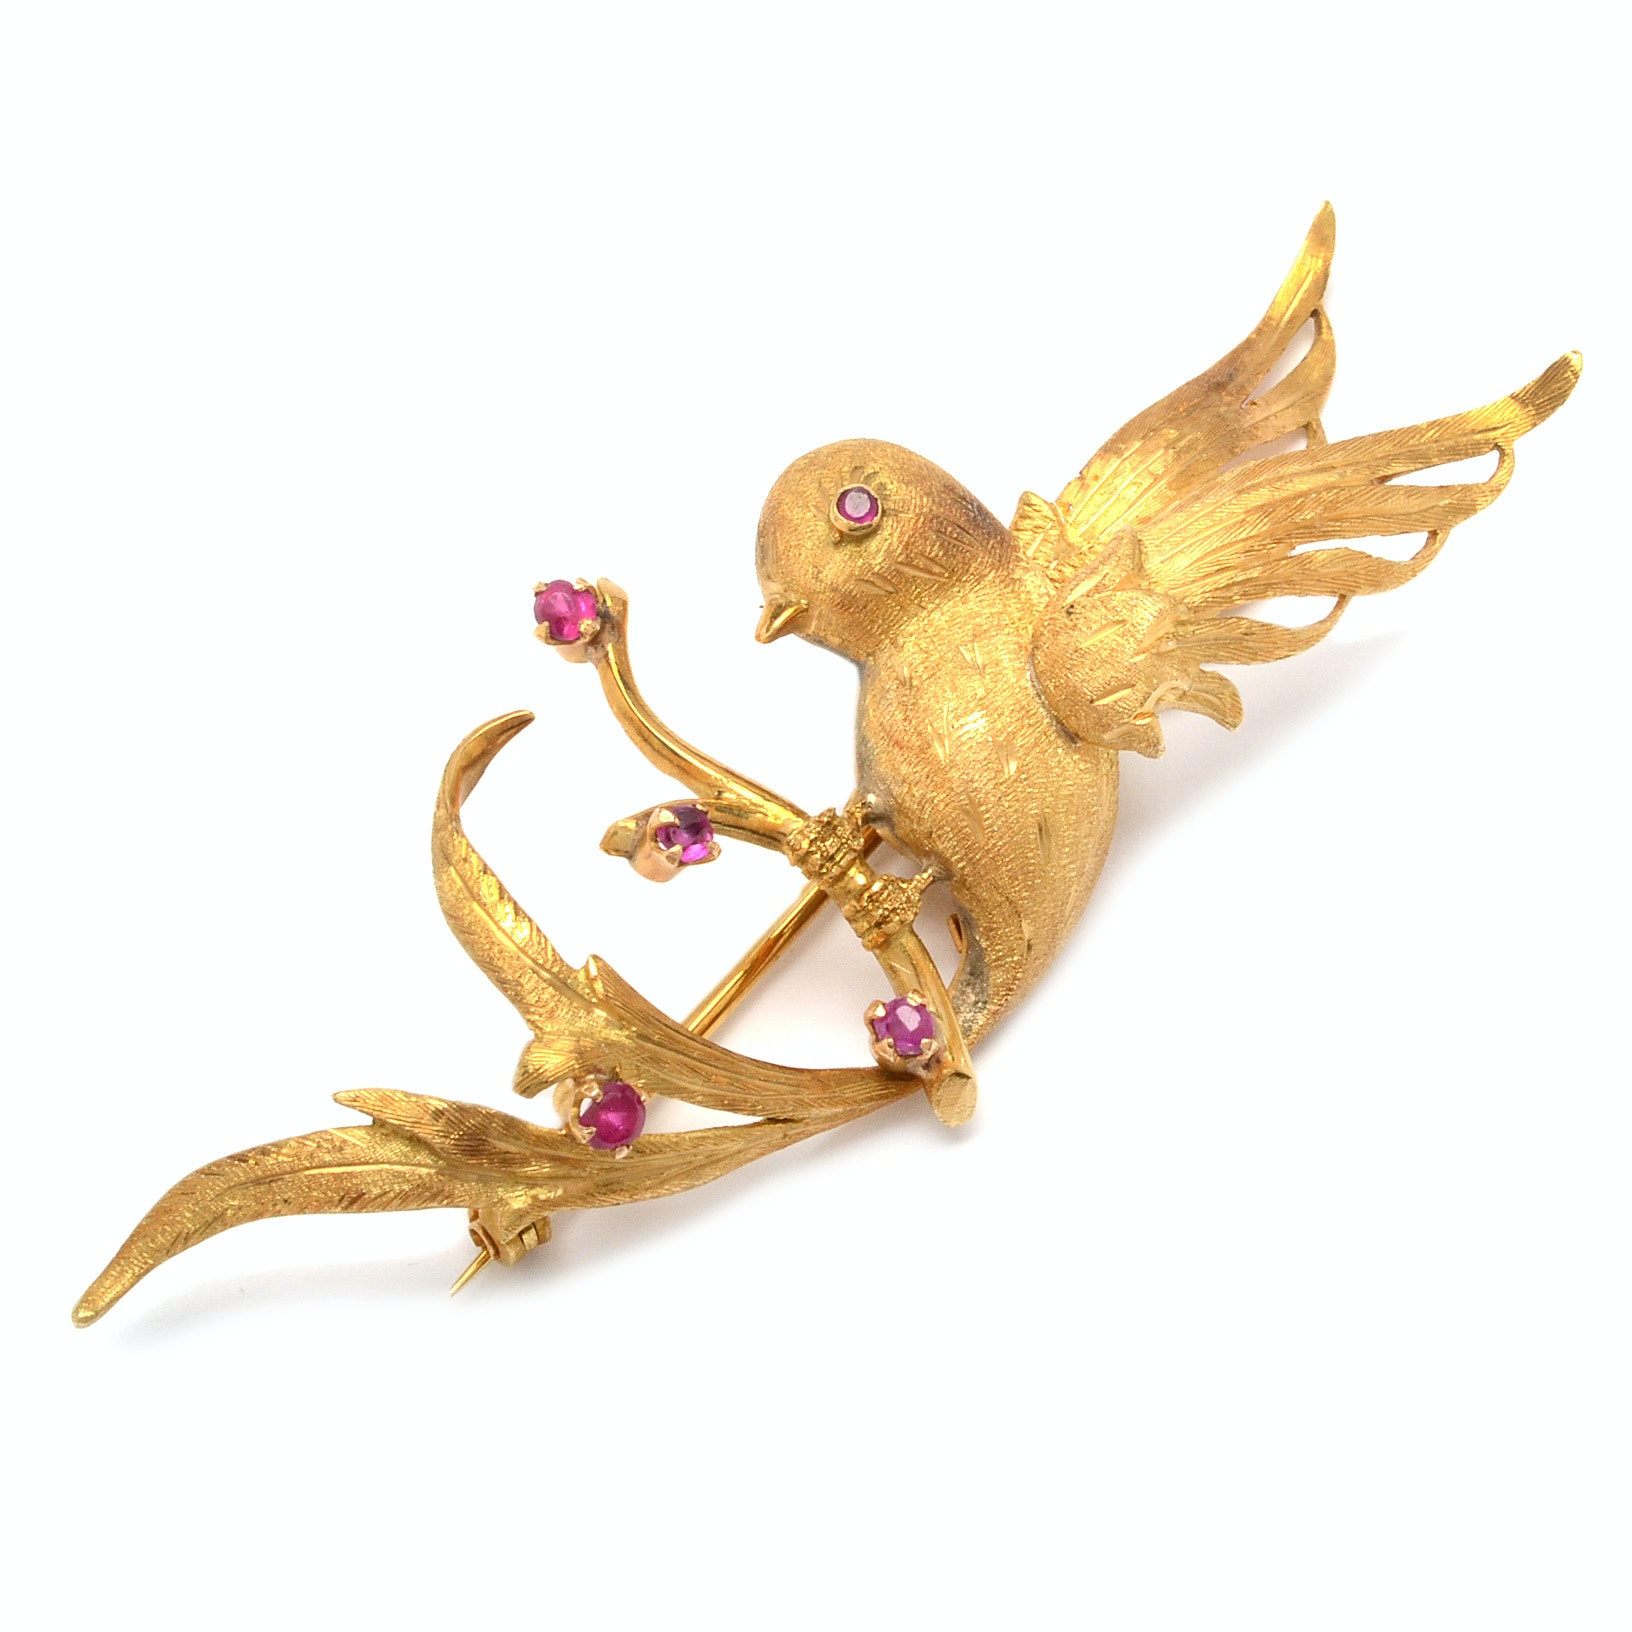 18K Yellow Gold Bird Brooch with Rubies